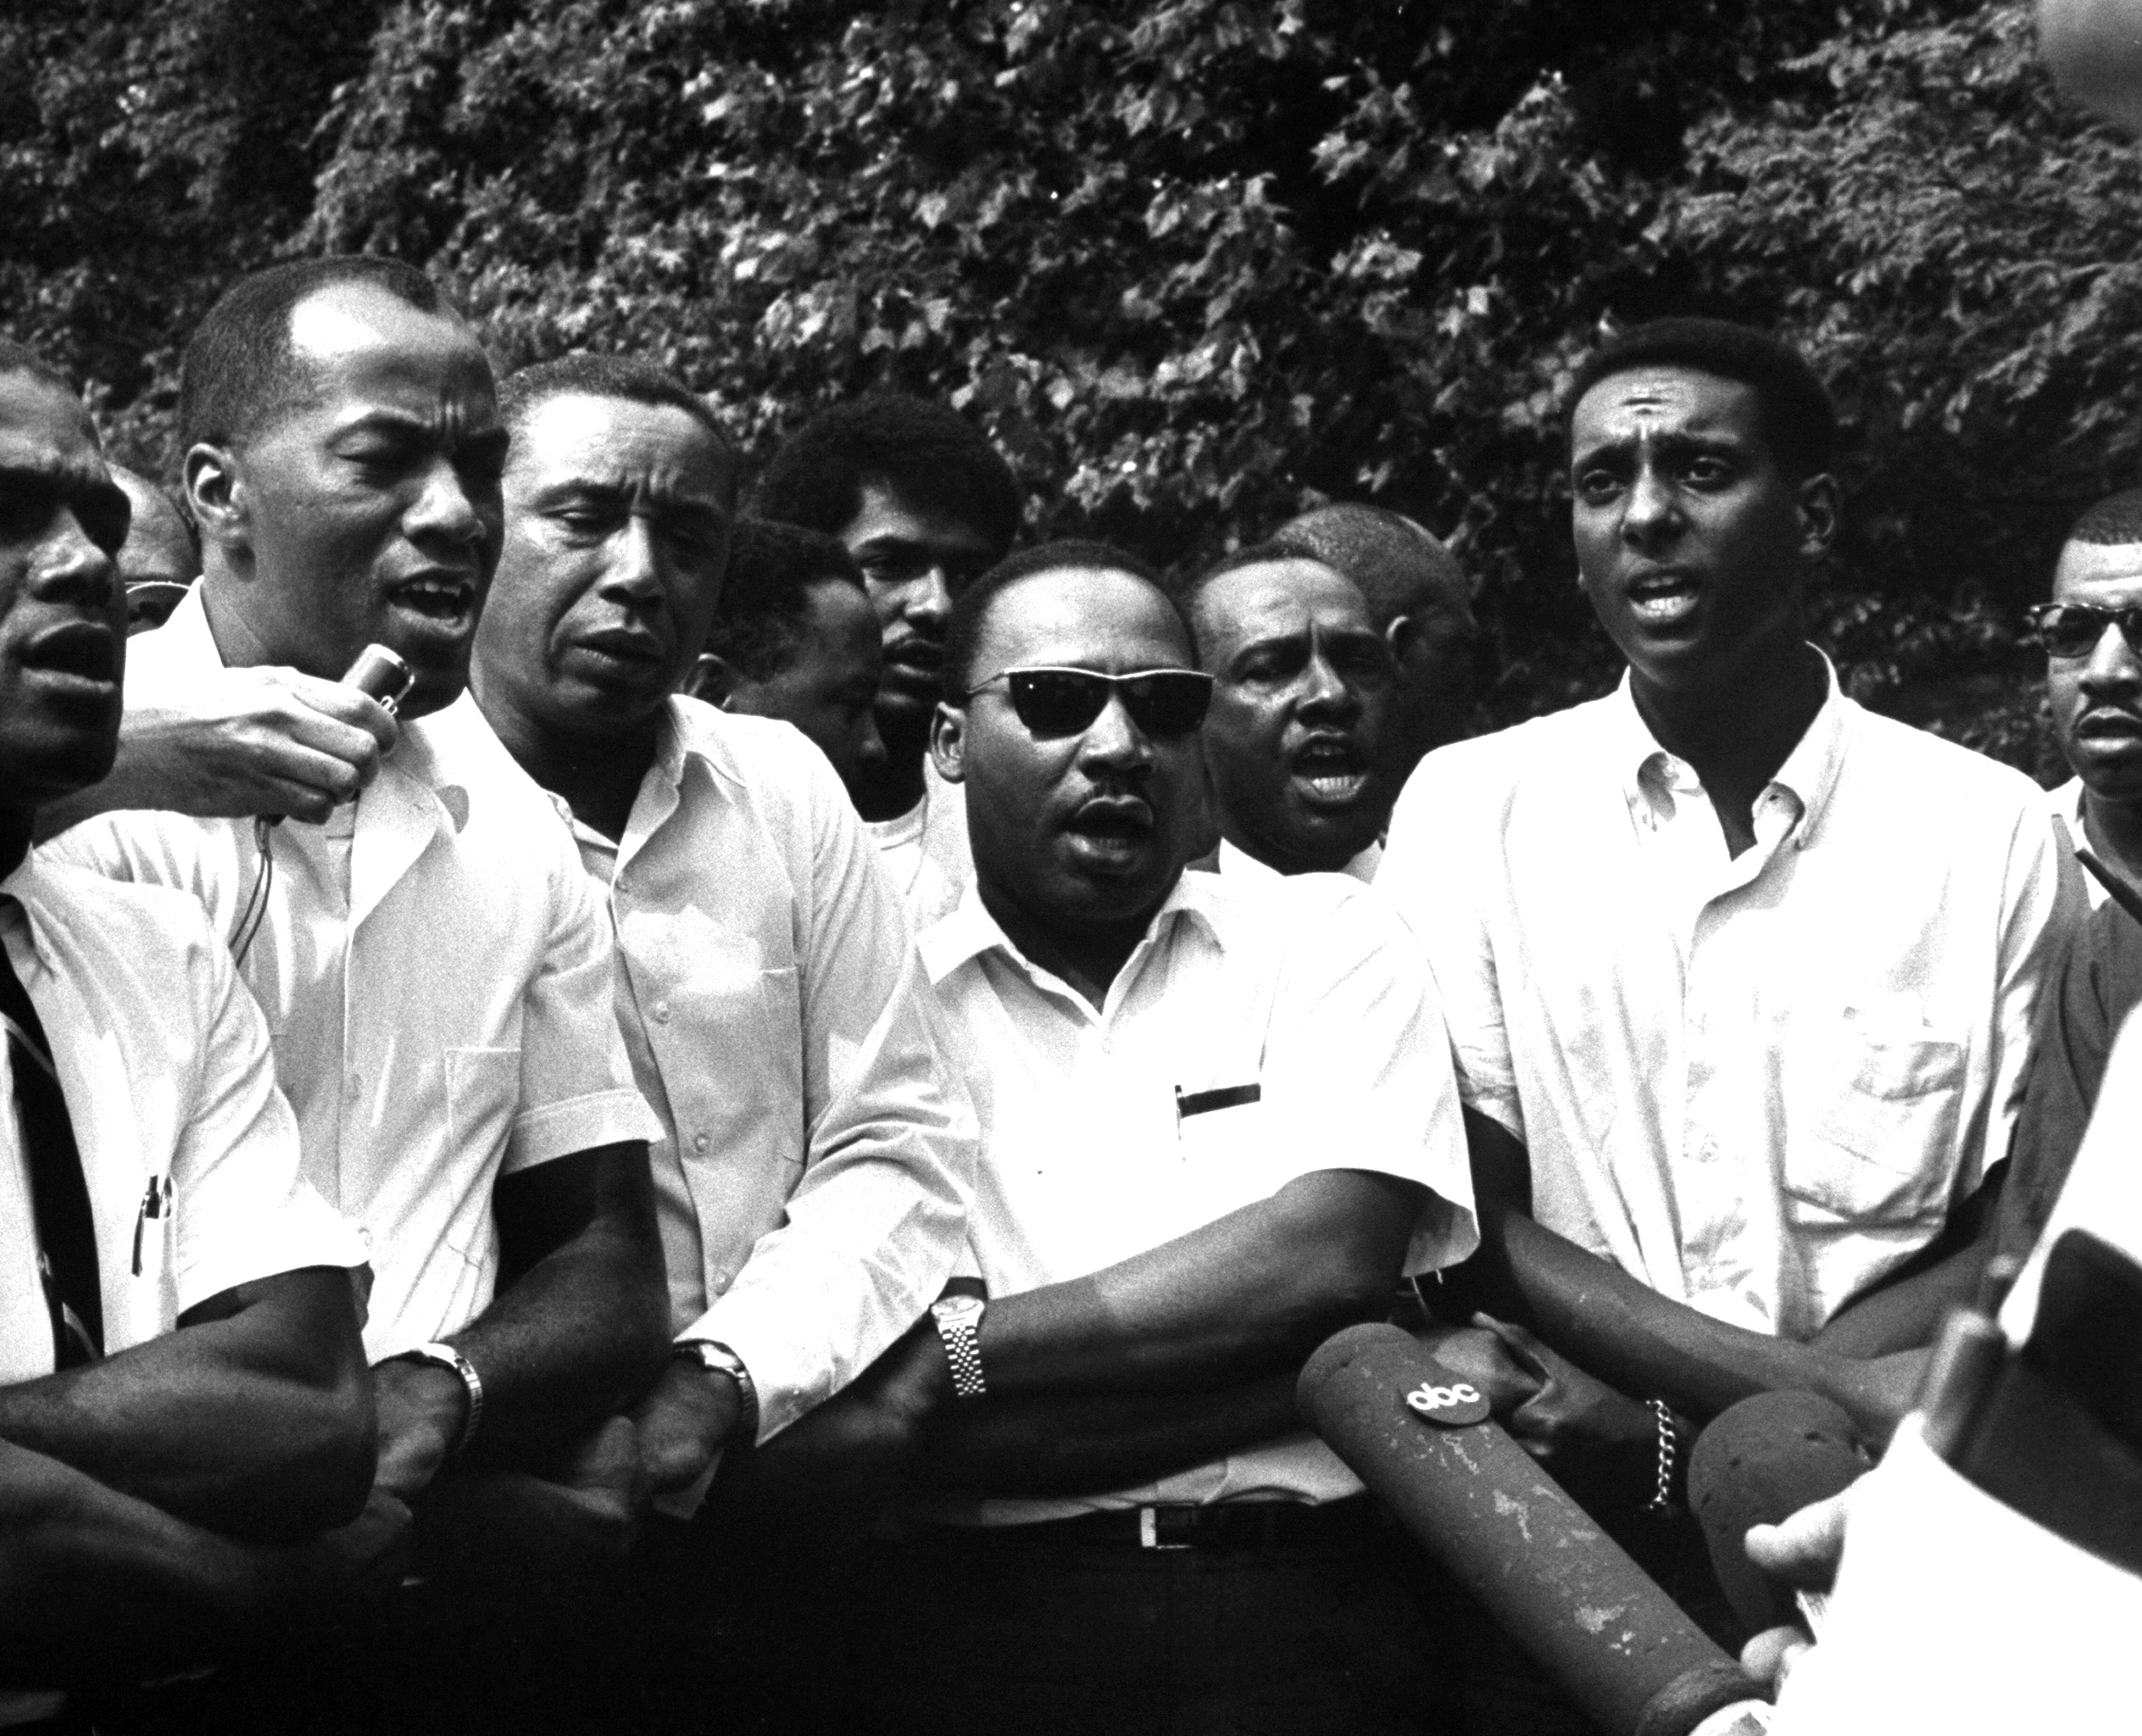 Civil rights leaders Floyd B. McKissick (fore, 3L), Dr. Martin Luther King Jr. (4R) and Stokely Carmichael (2R) participating in voter registration march after originator James H. Meredith was shot, 1966.